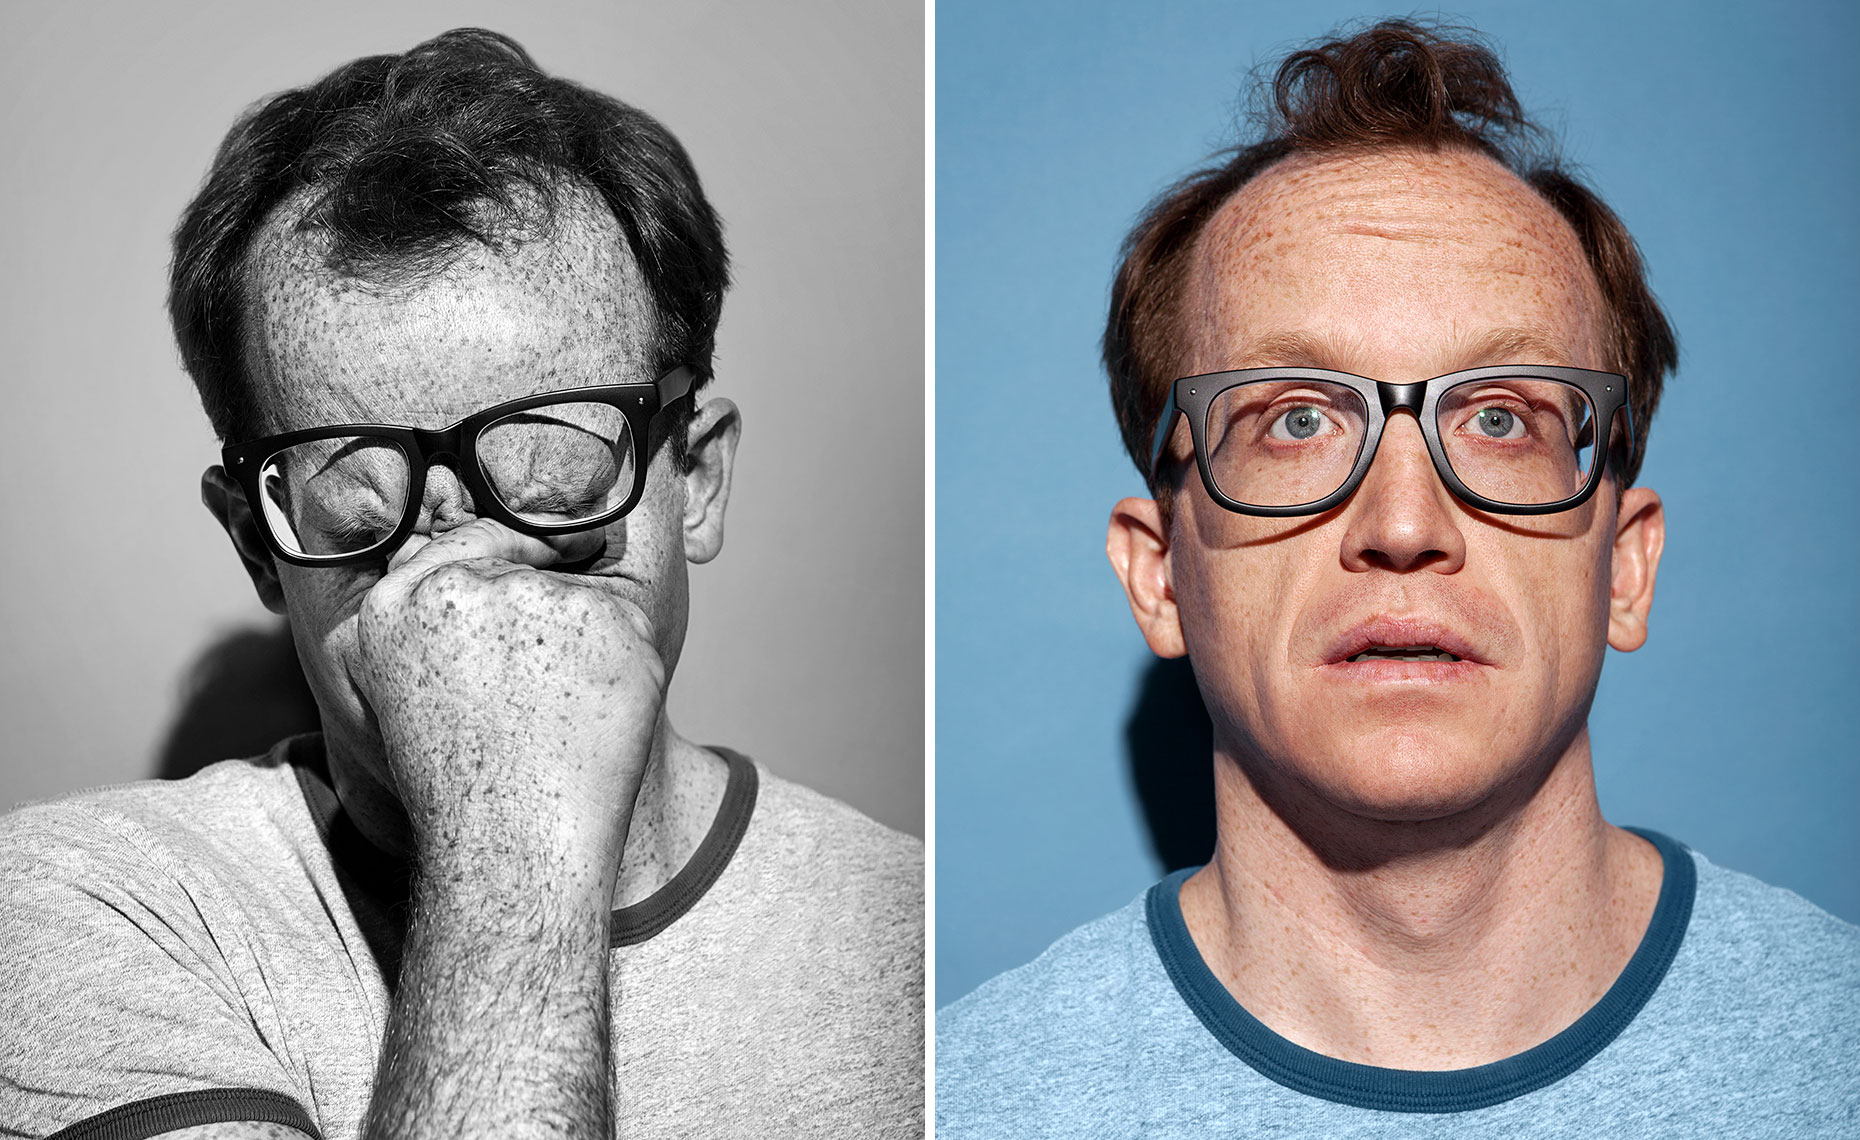 Chris Gethard - Comedian, Show Host, Author